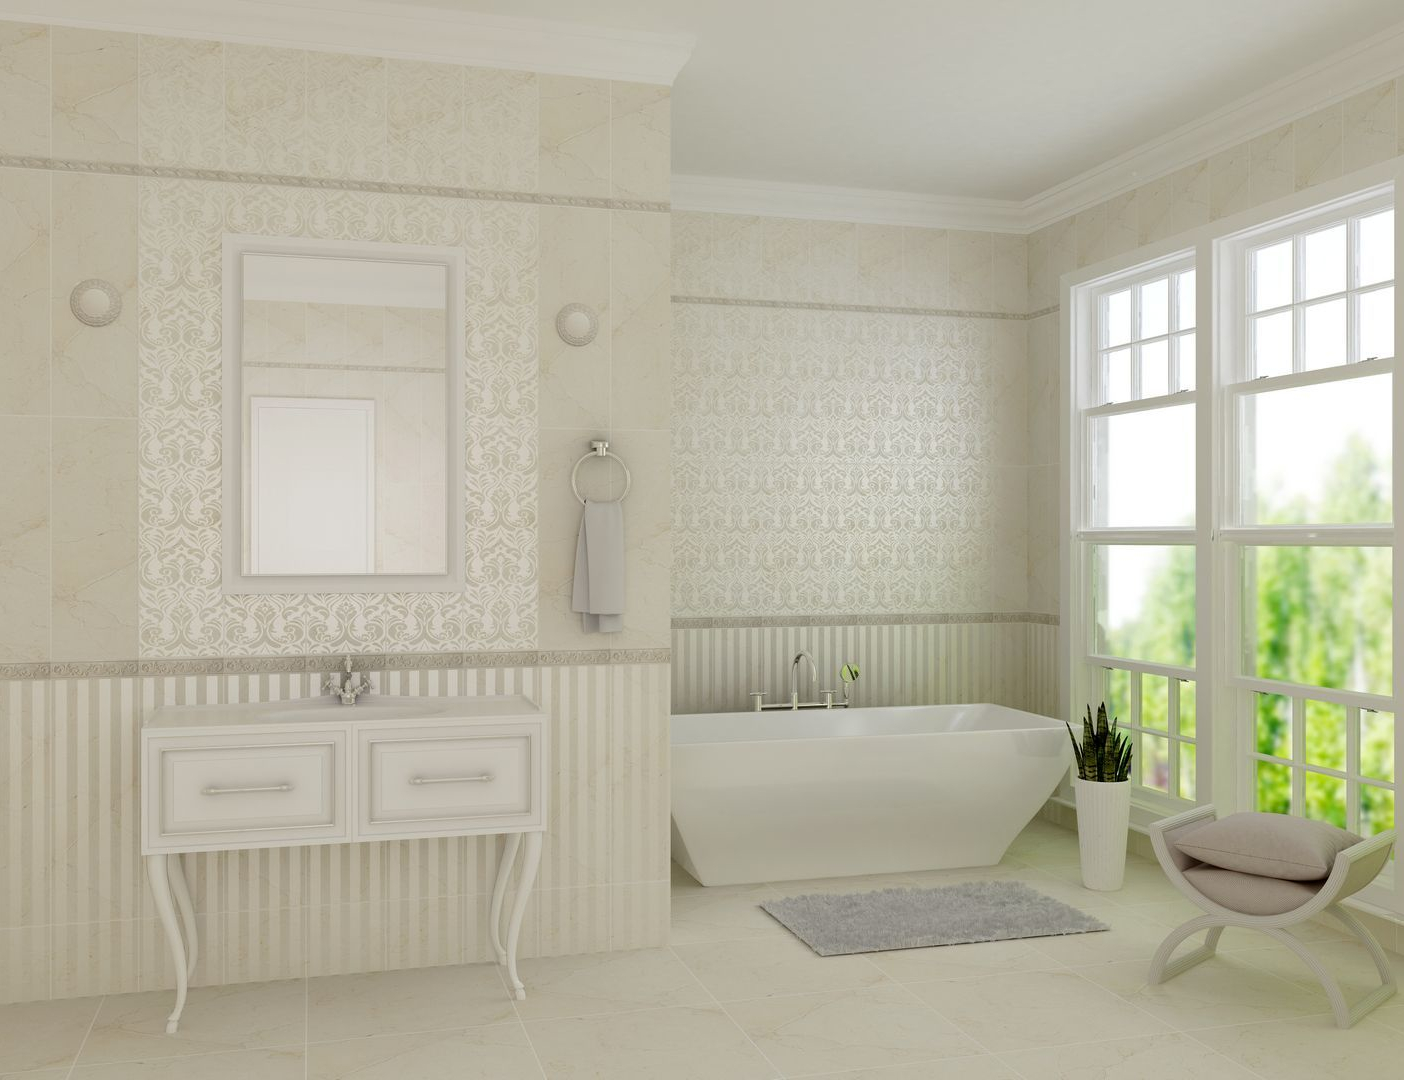 Antico beige decor 02 250х750 (1-й сорт)